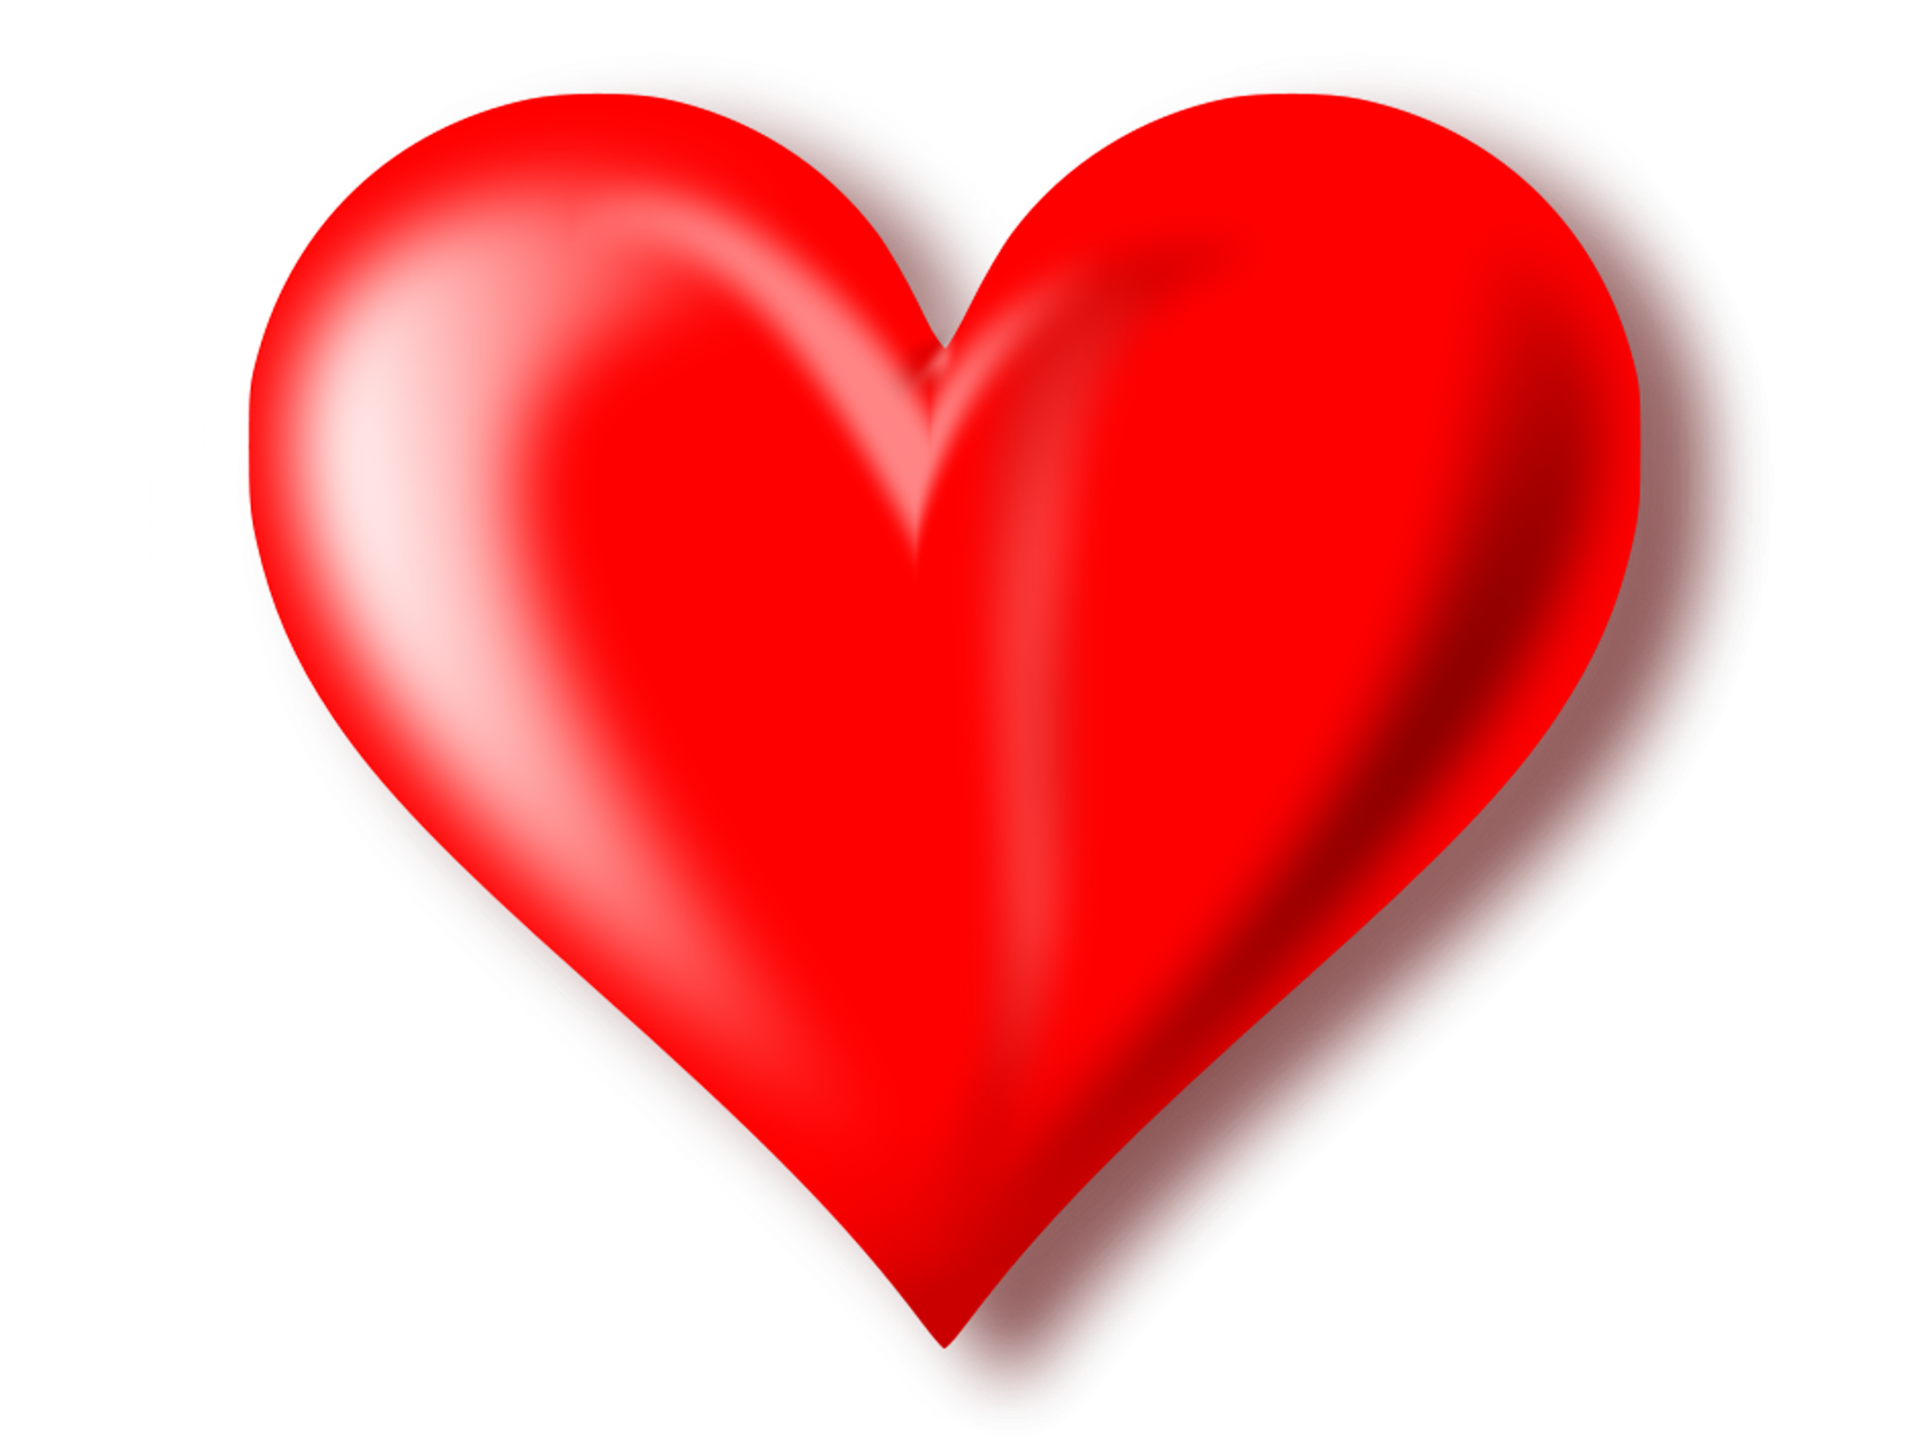 collection of hearts. Heart clipart transparent background